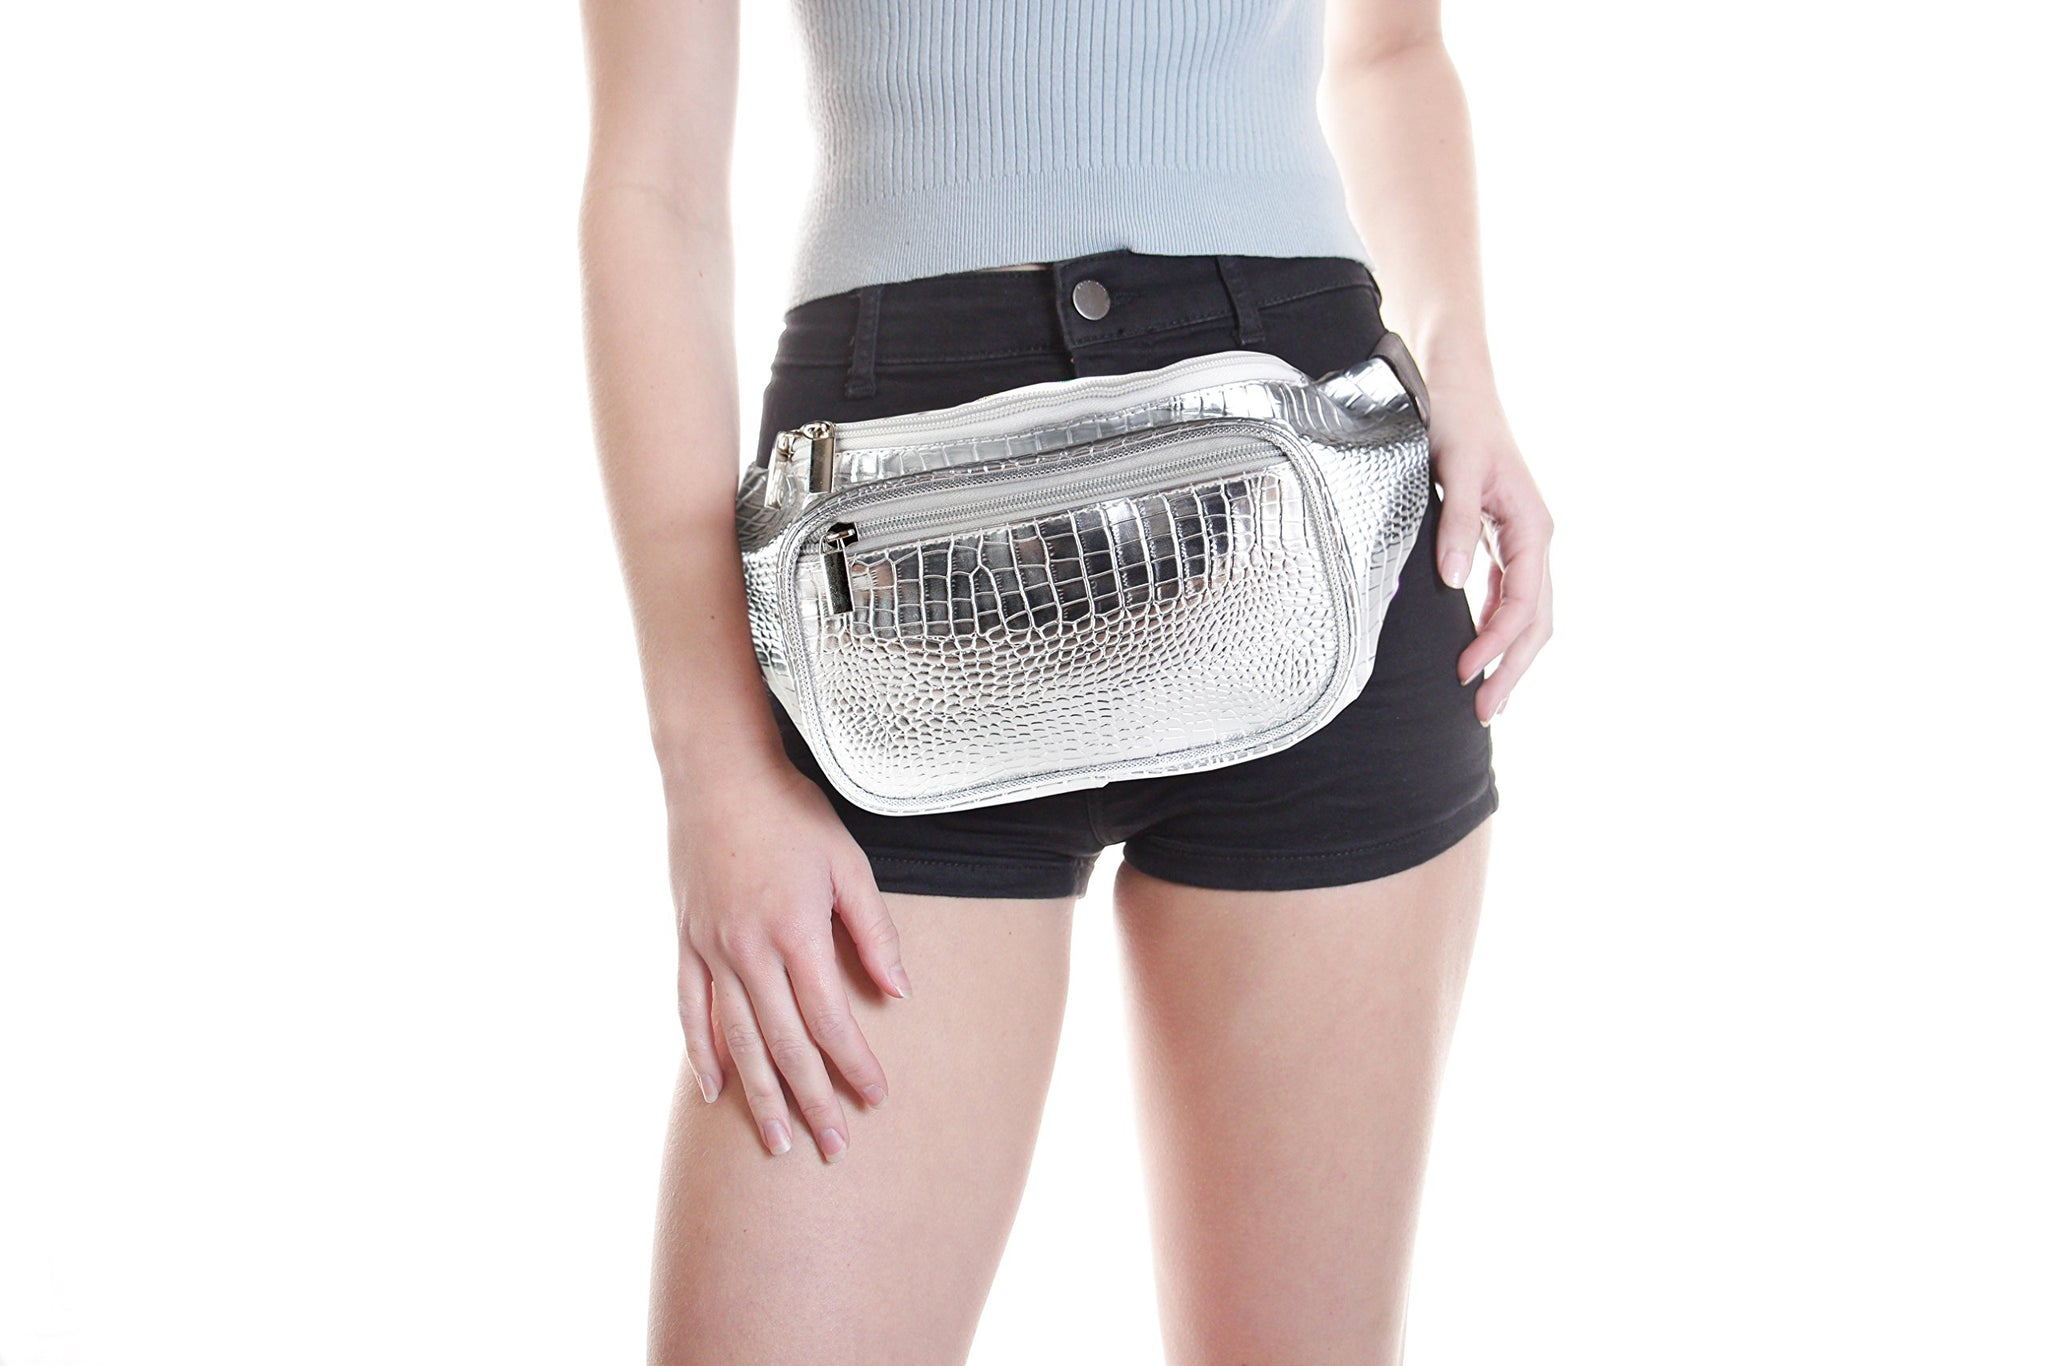 Party Festival Fanny Pack Fashion Casual Waist Packs for Women Printing Bag for Travel for Rave Day